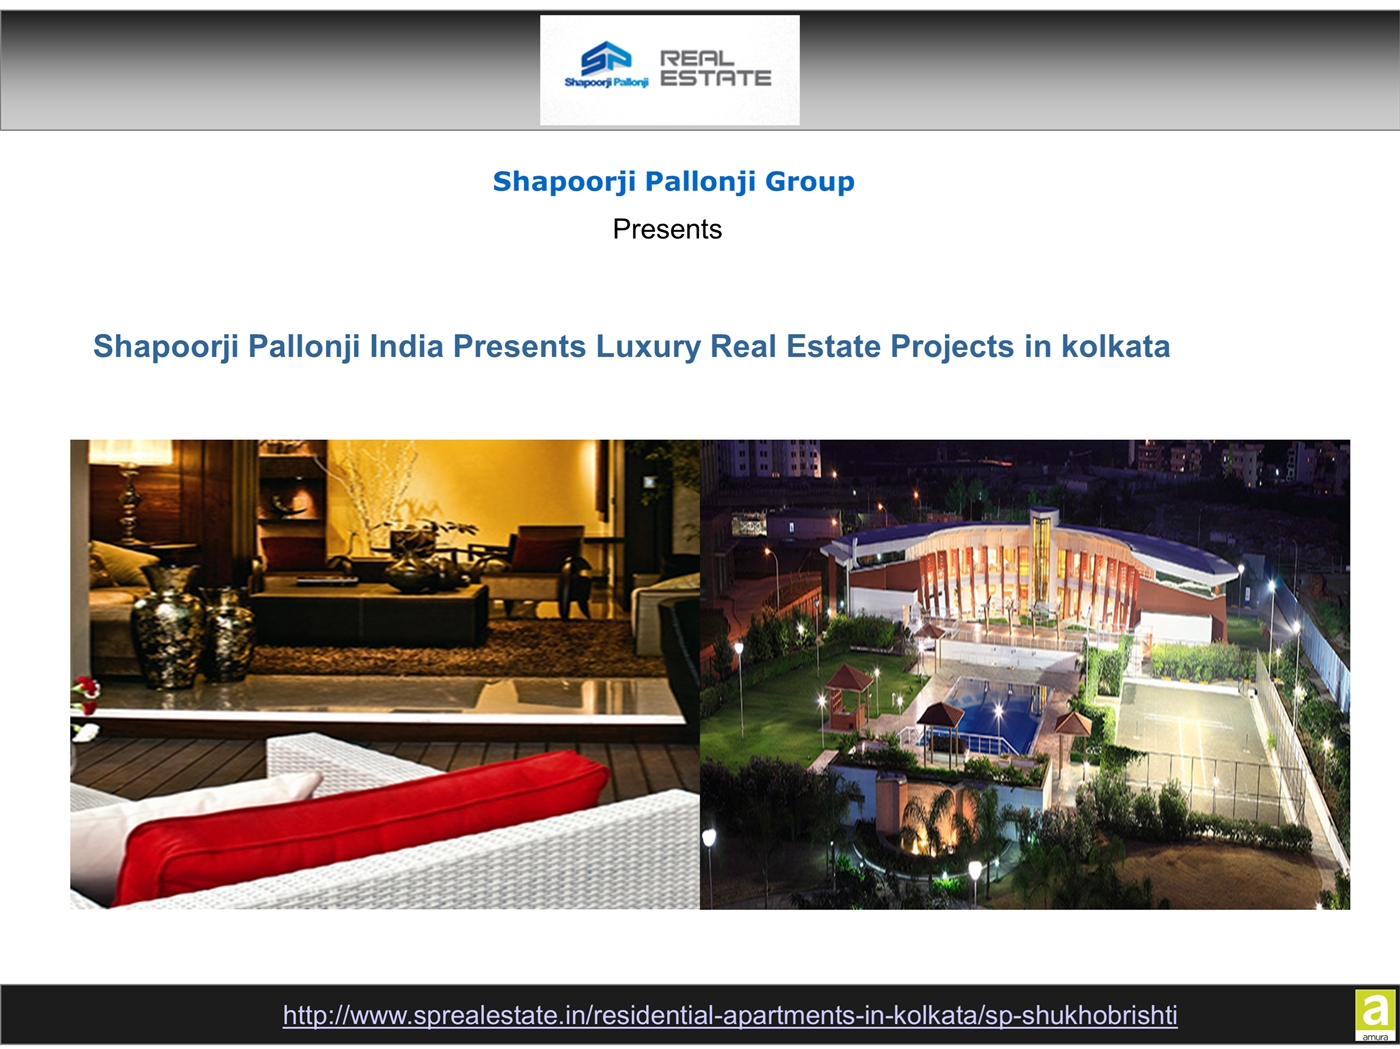 Luxury Real Estate Projects in kolkata by Shapoorji Pallonji ppt